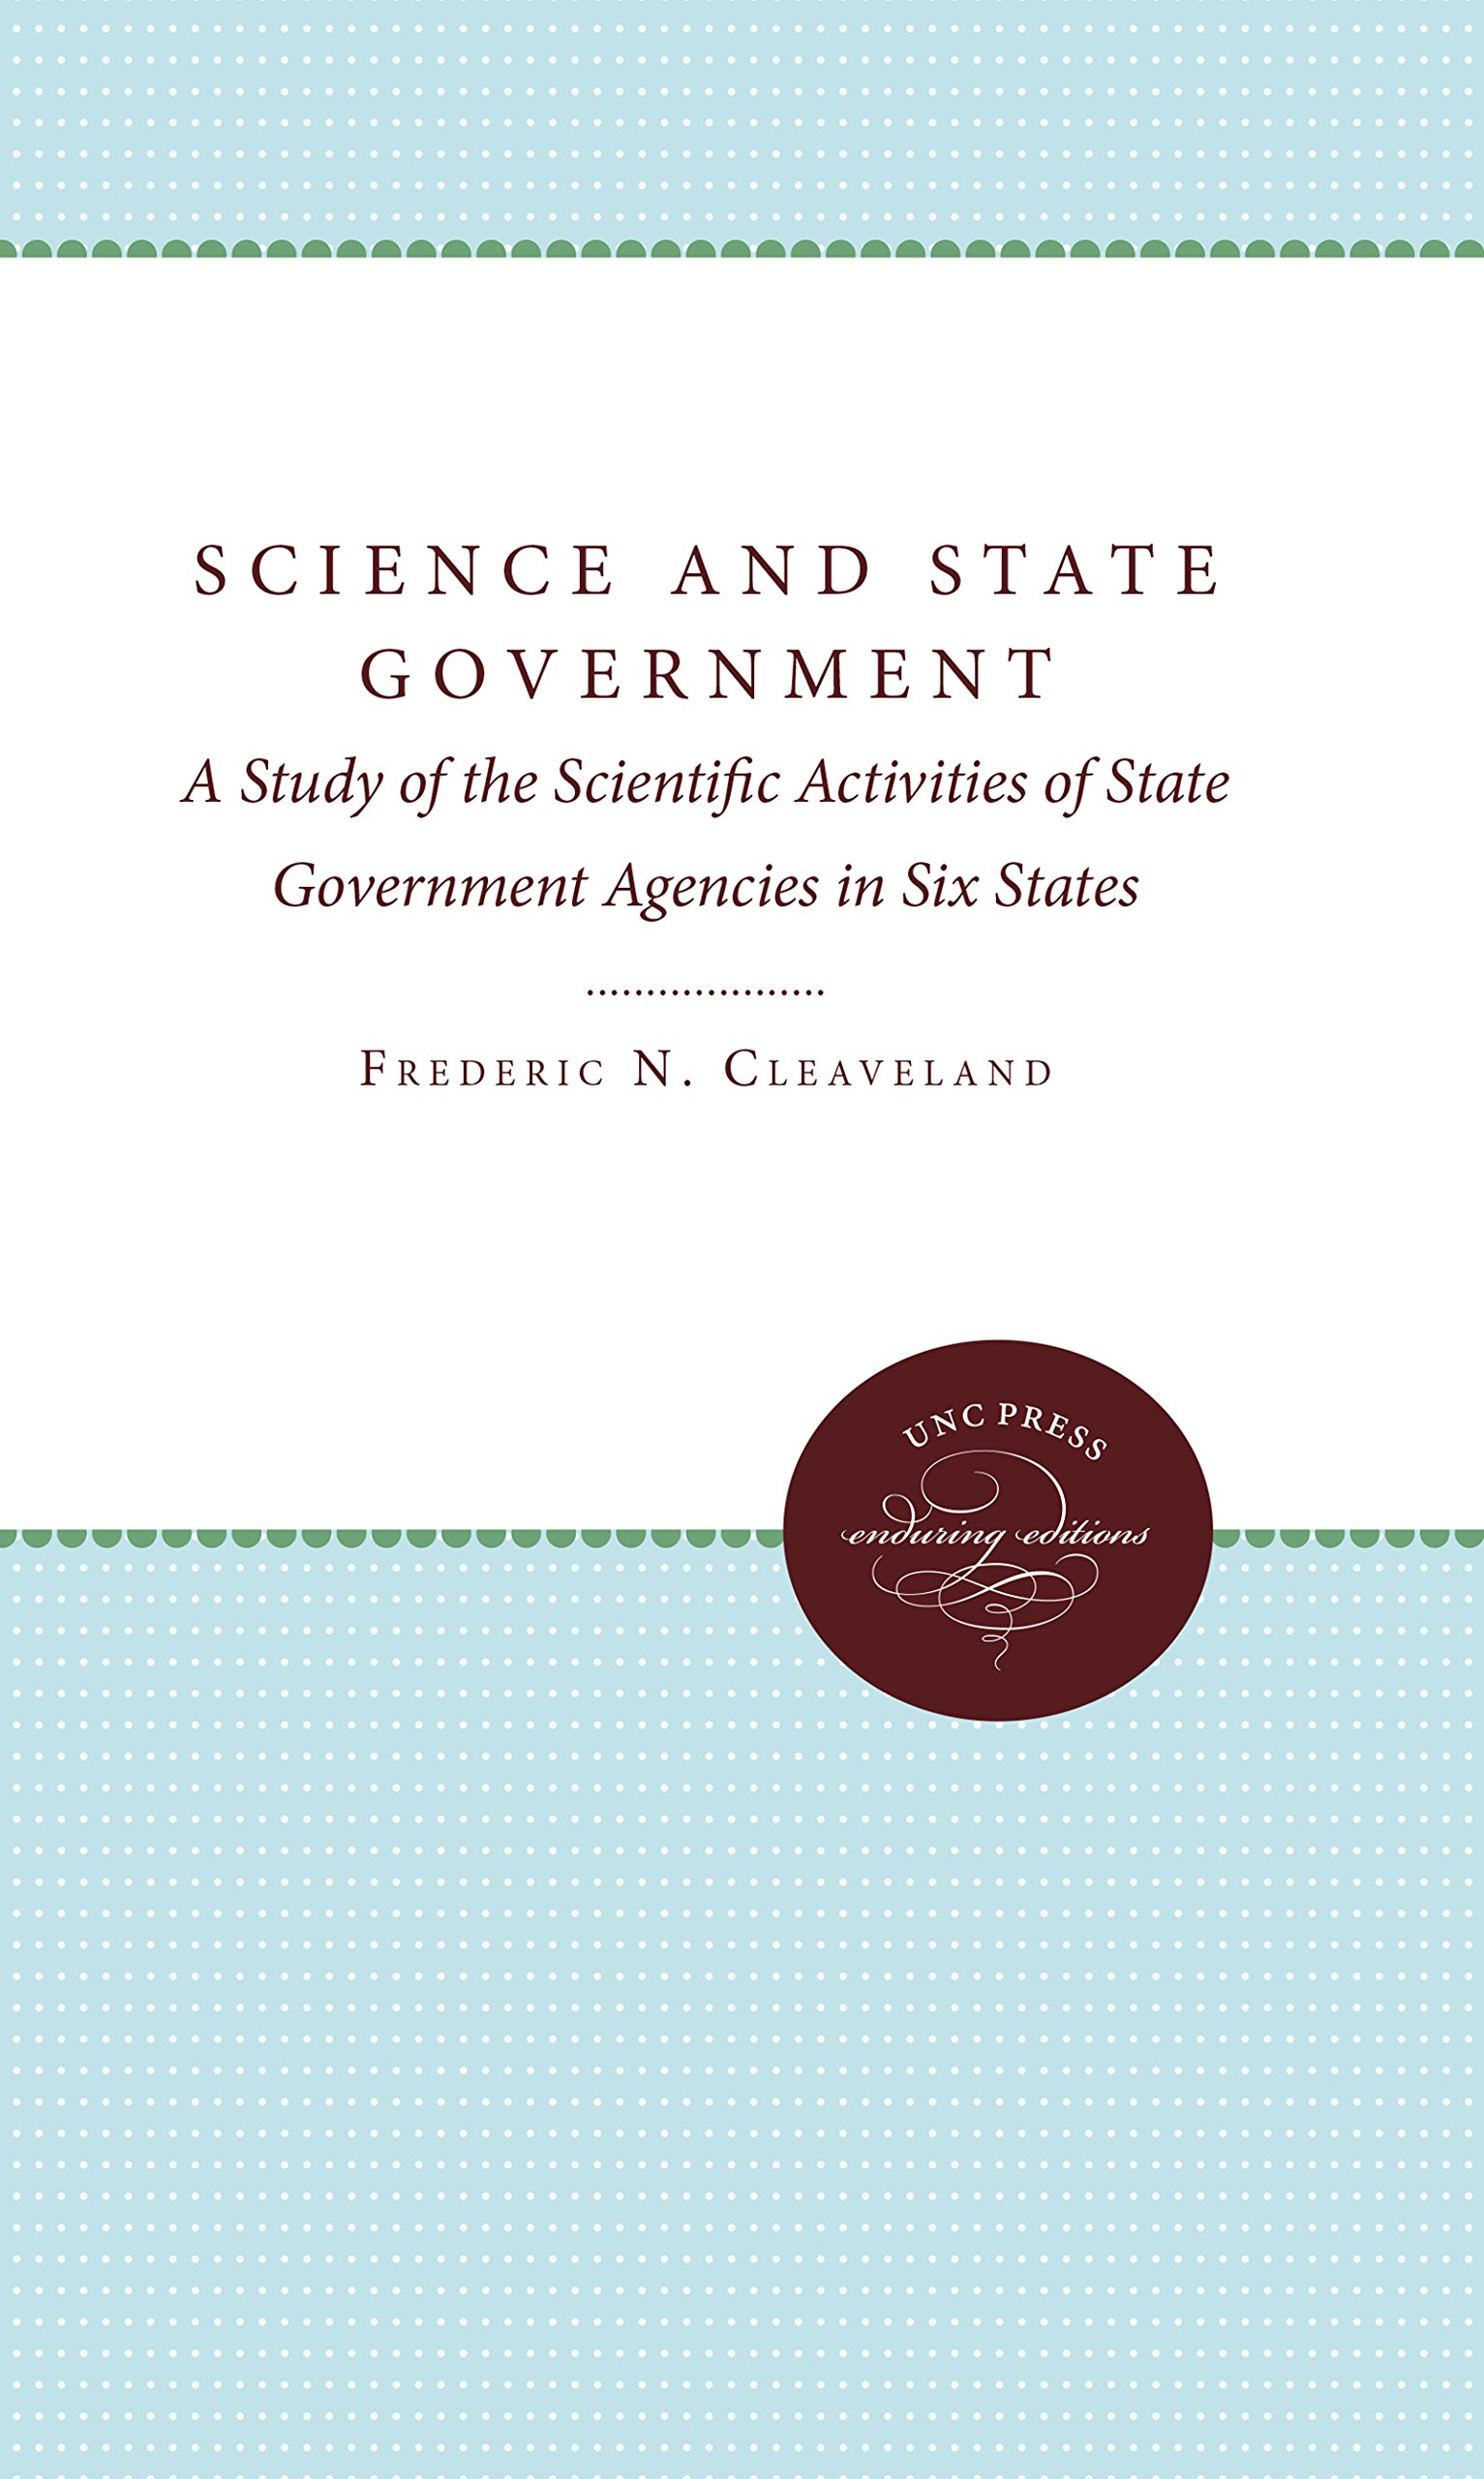 Download Science and State Government: A Study of the Scientific Activities of State Government and Agencies in Six States (Enduring Editions) pdf epub